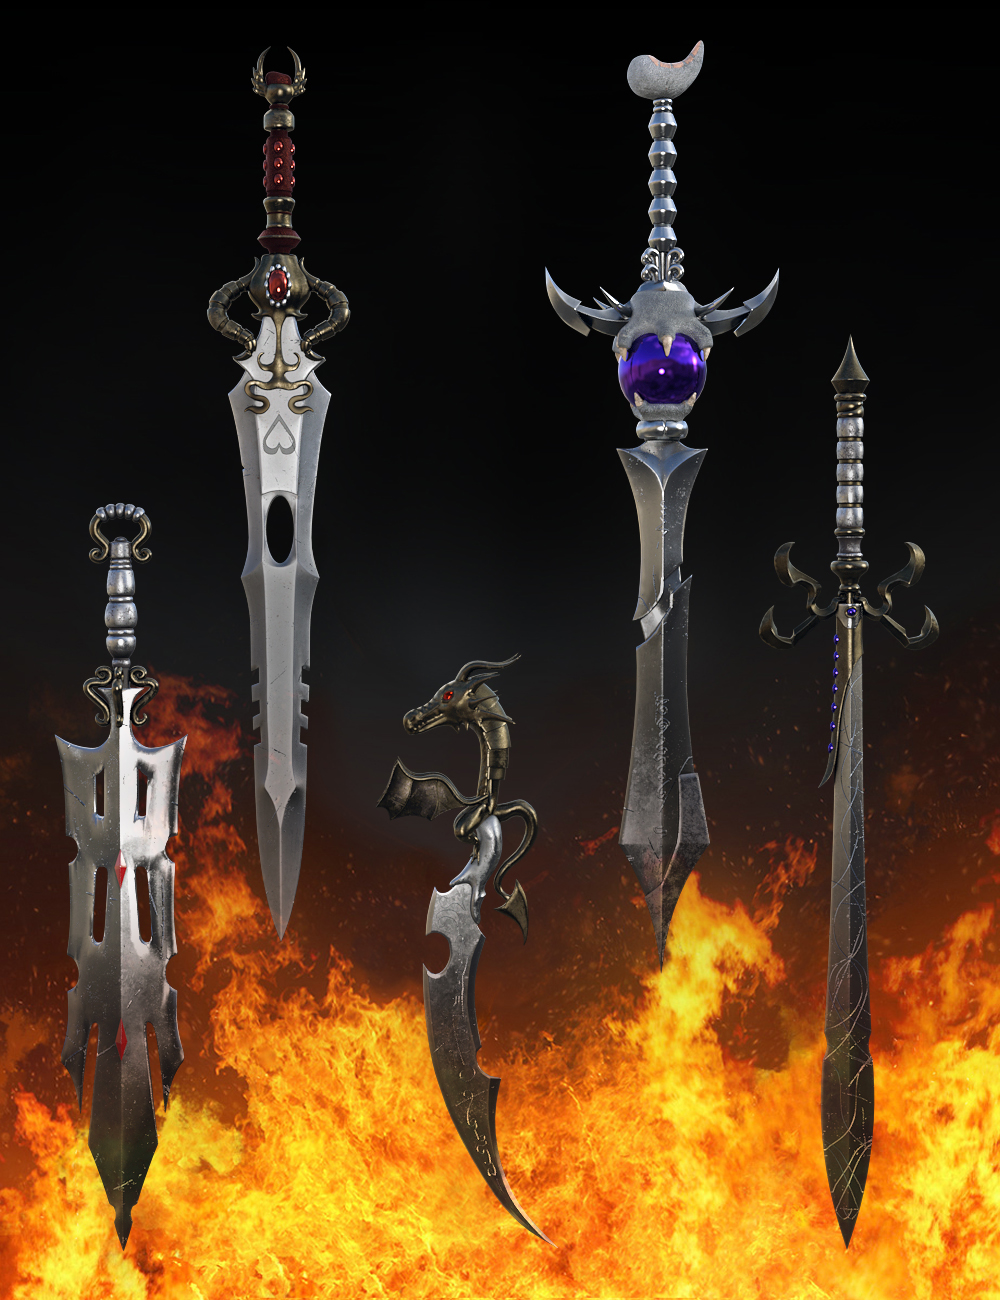 Fantasy Swords Collection Vol1 for Genesis 8 by: fjaa3d, 3D Models by Daz 3D